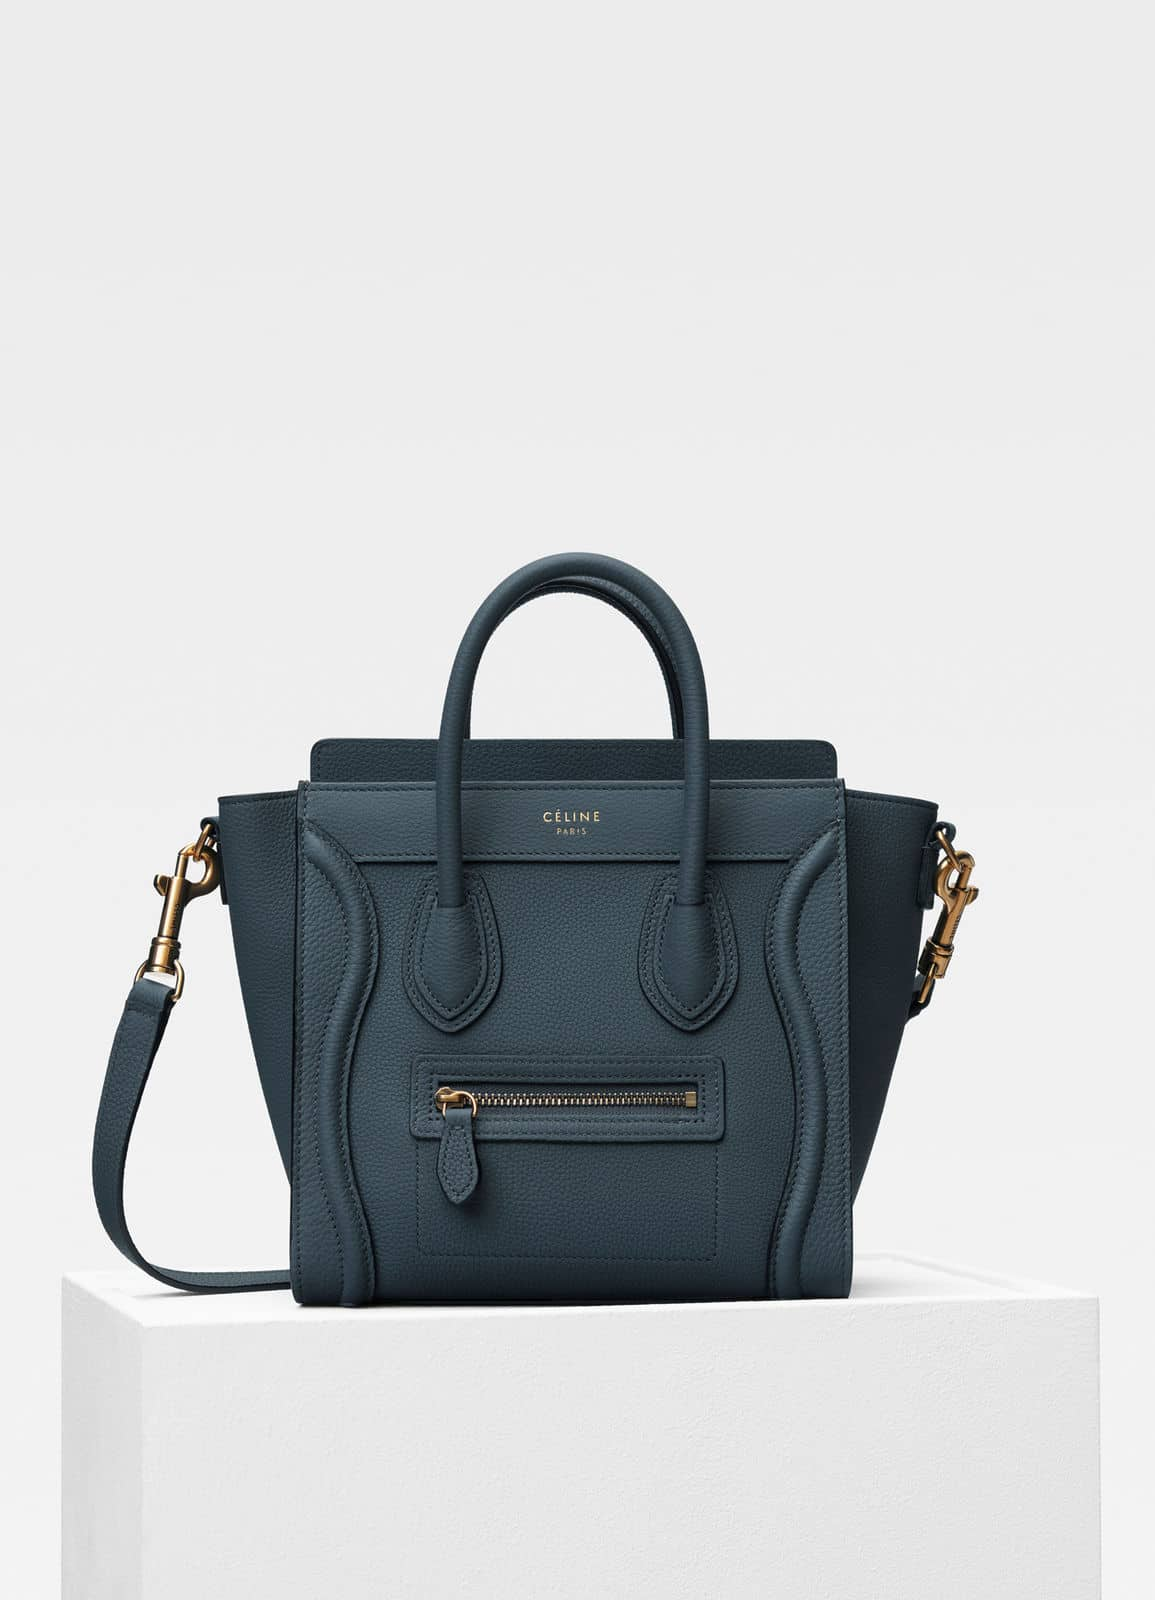 71d1f378266cb5 REVIEW] Céline Luggage Nano in Slate from Marble Factory via TS ...